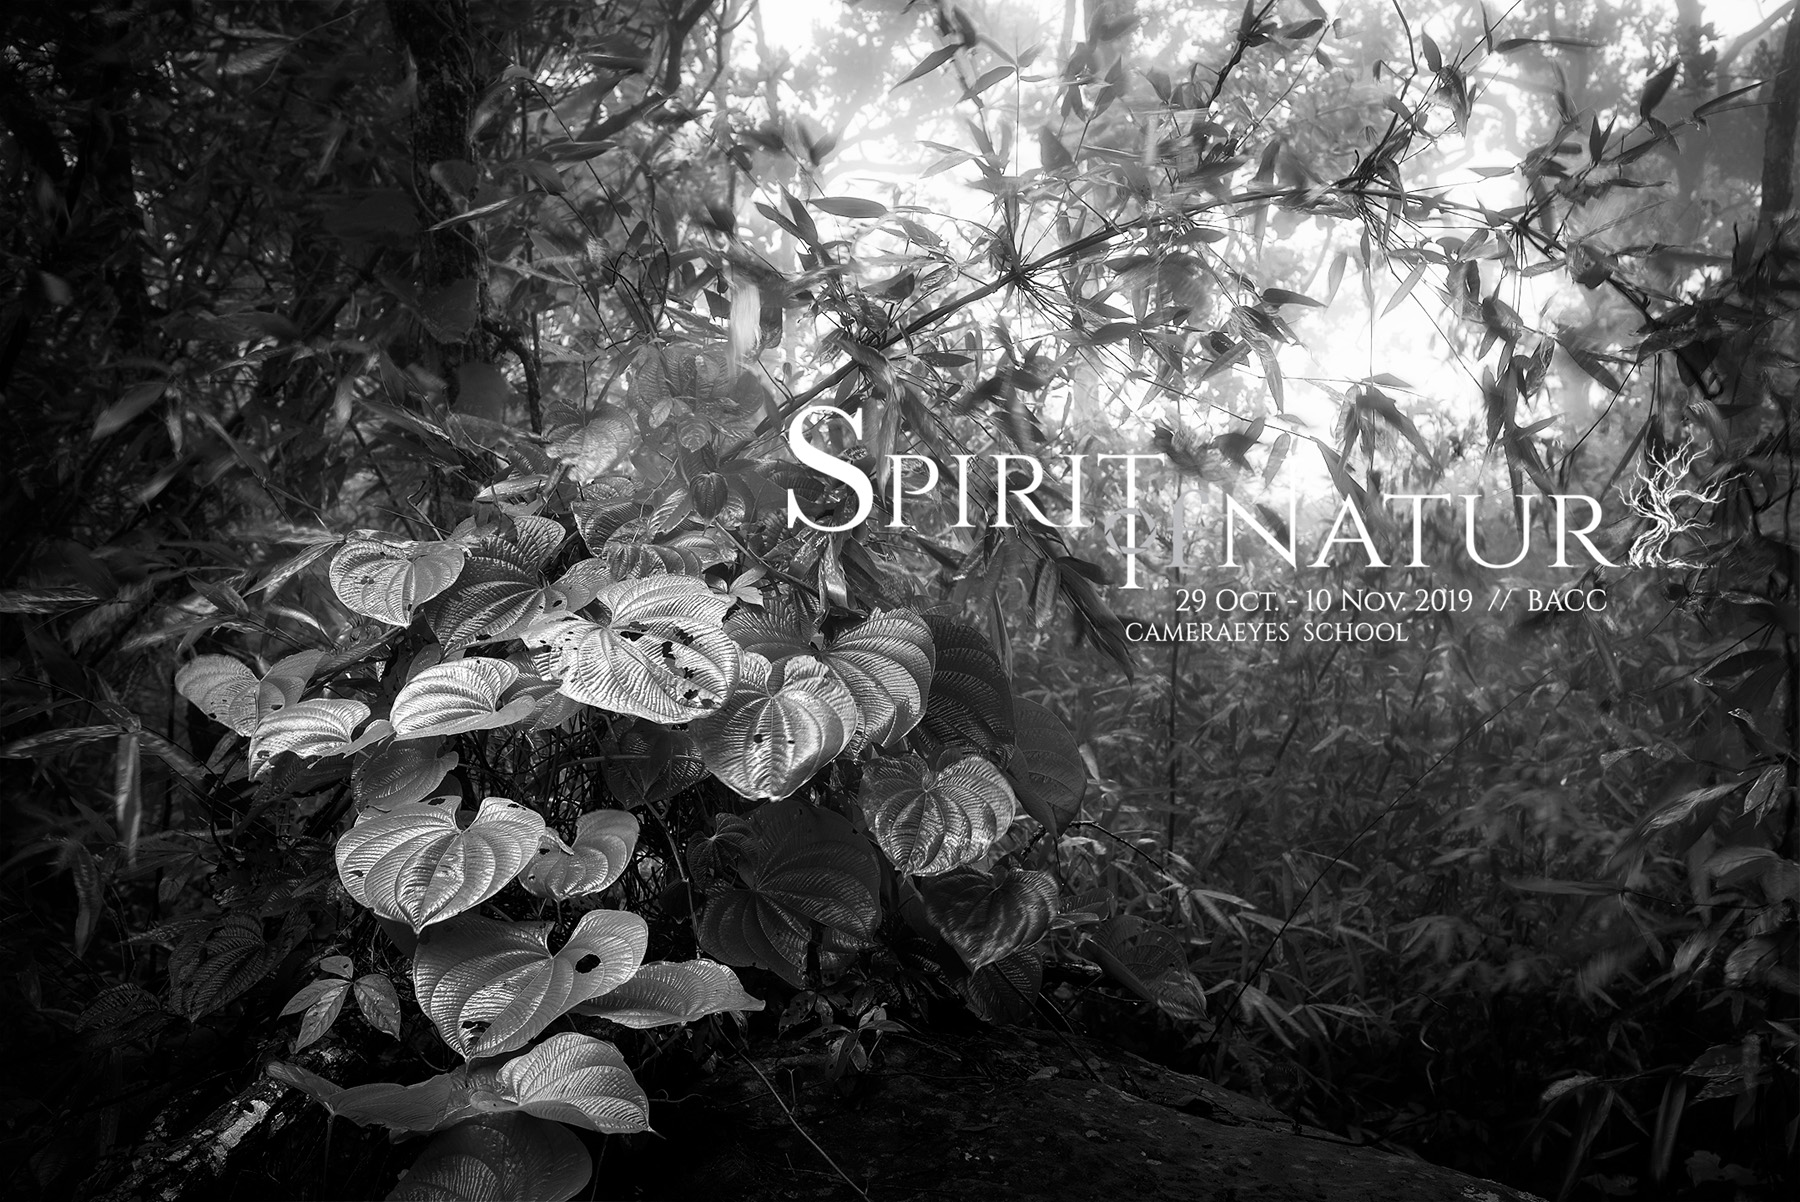 Spirit of Nature 2019 Exhibition